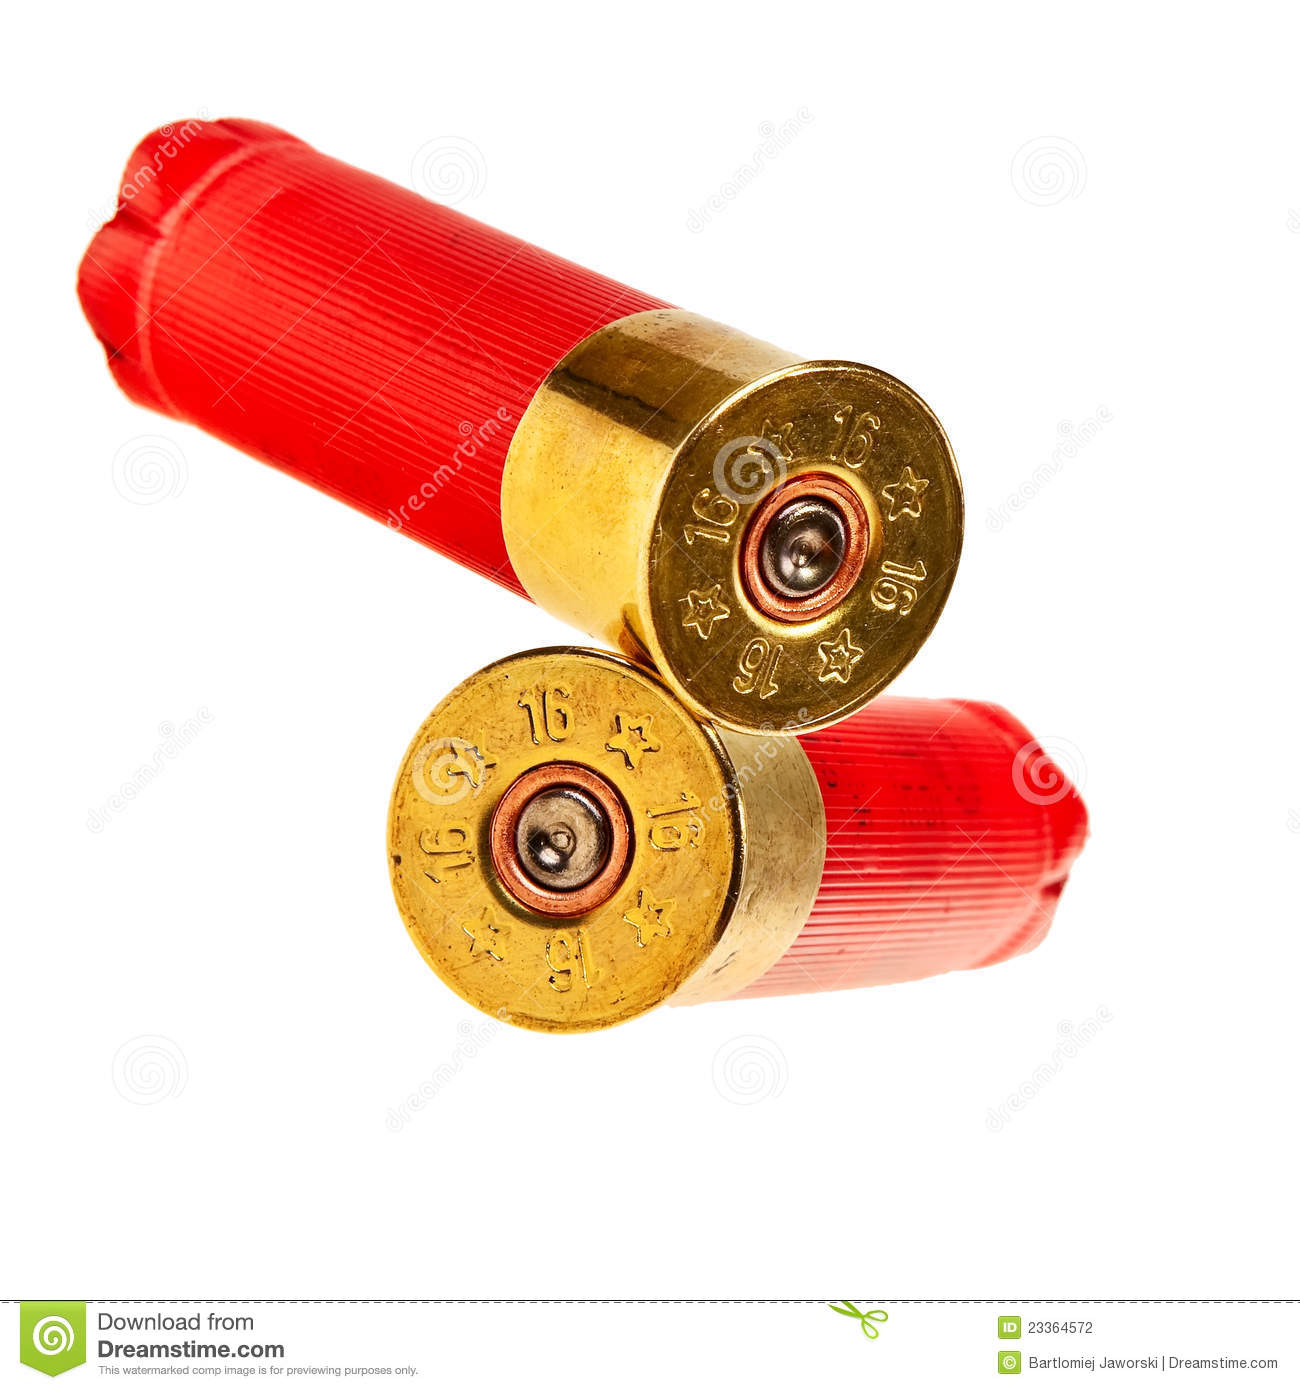 shotgun shells background - photo #36